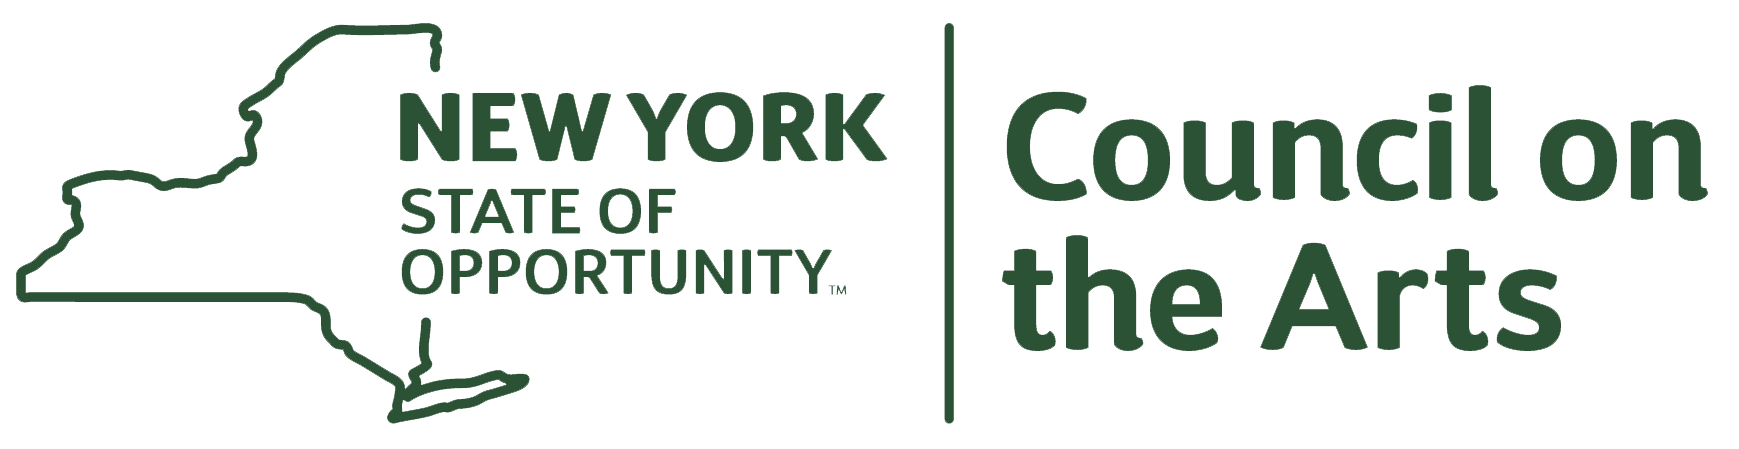 NYSCA 2021: Information for Fiscally-Sponsored Projects in New York